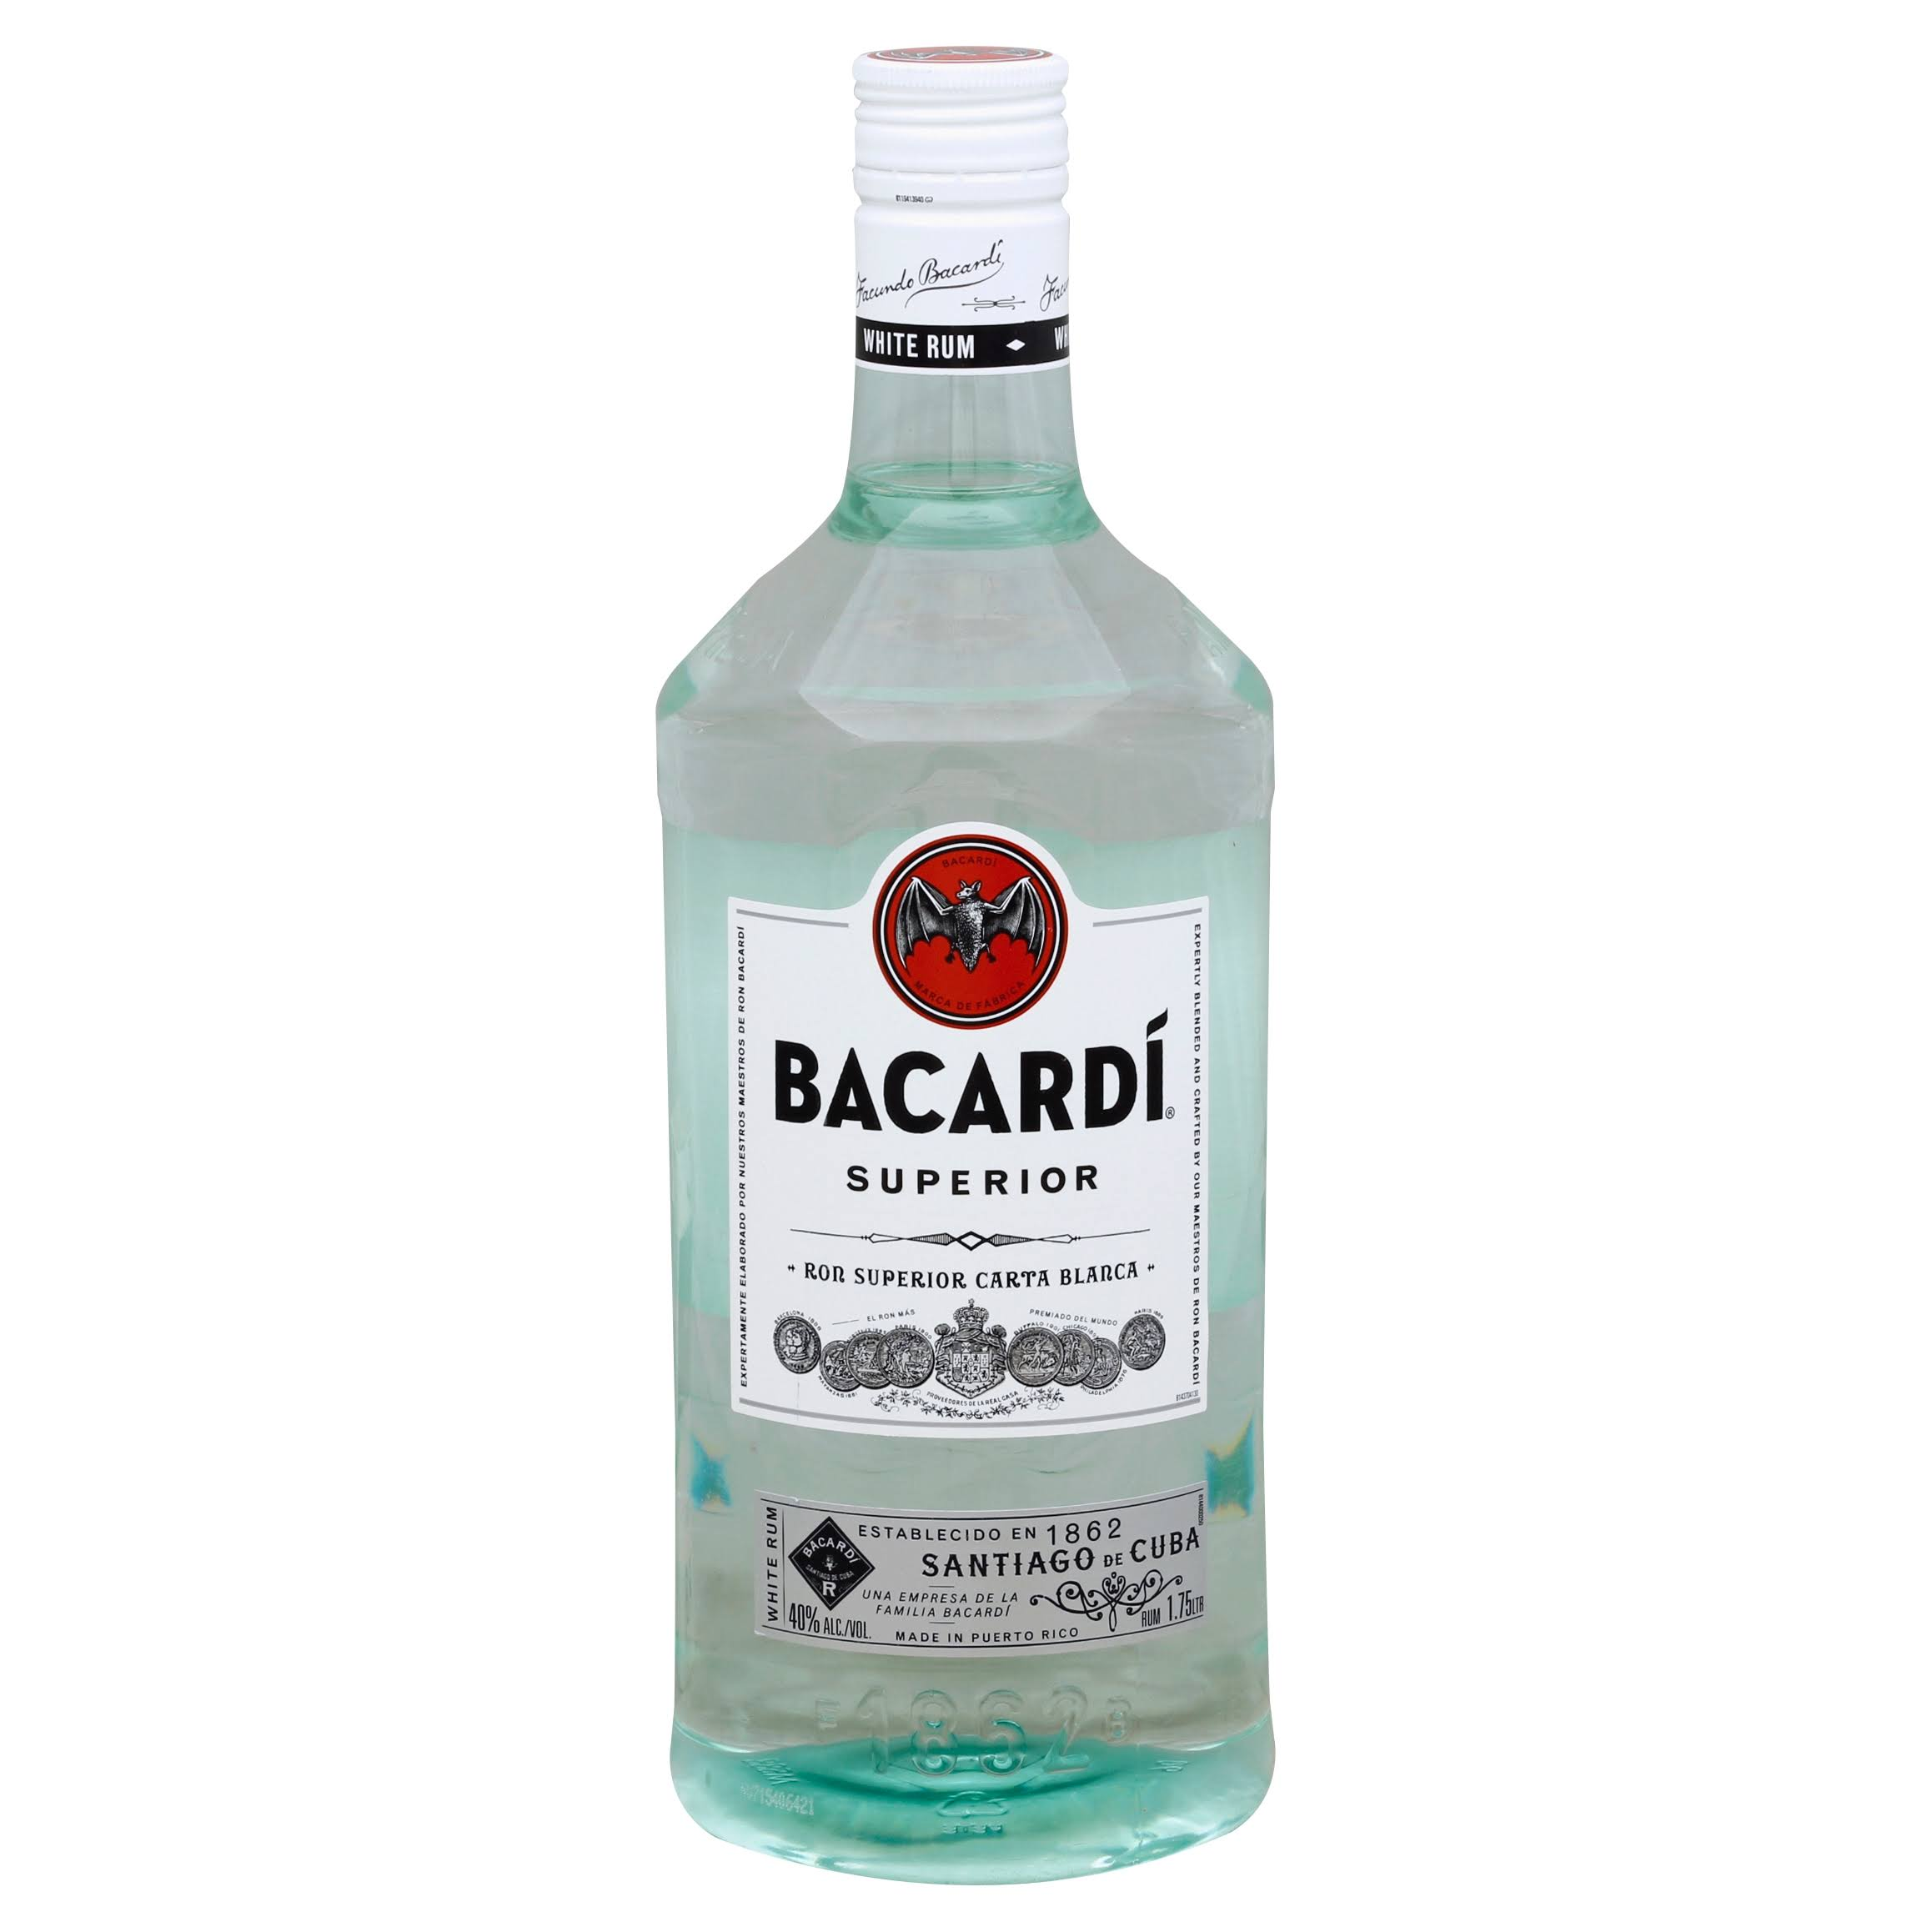 Bacardi Superior White Rum - 750 ml bottle